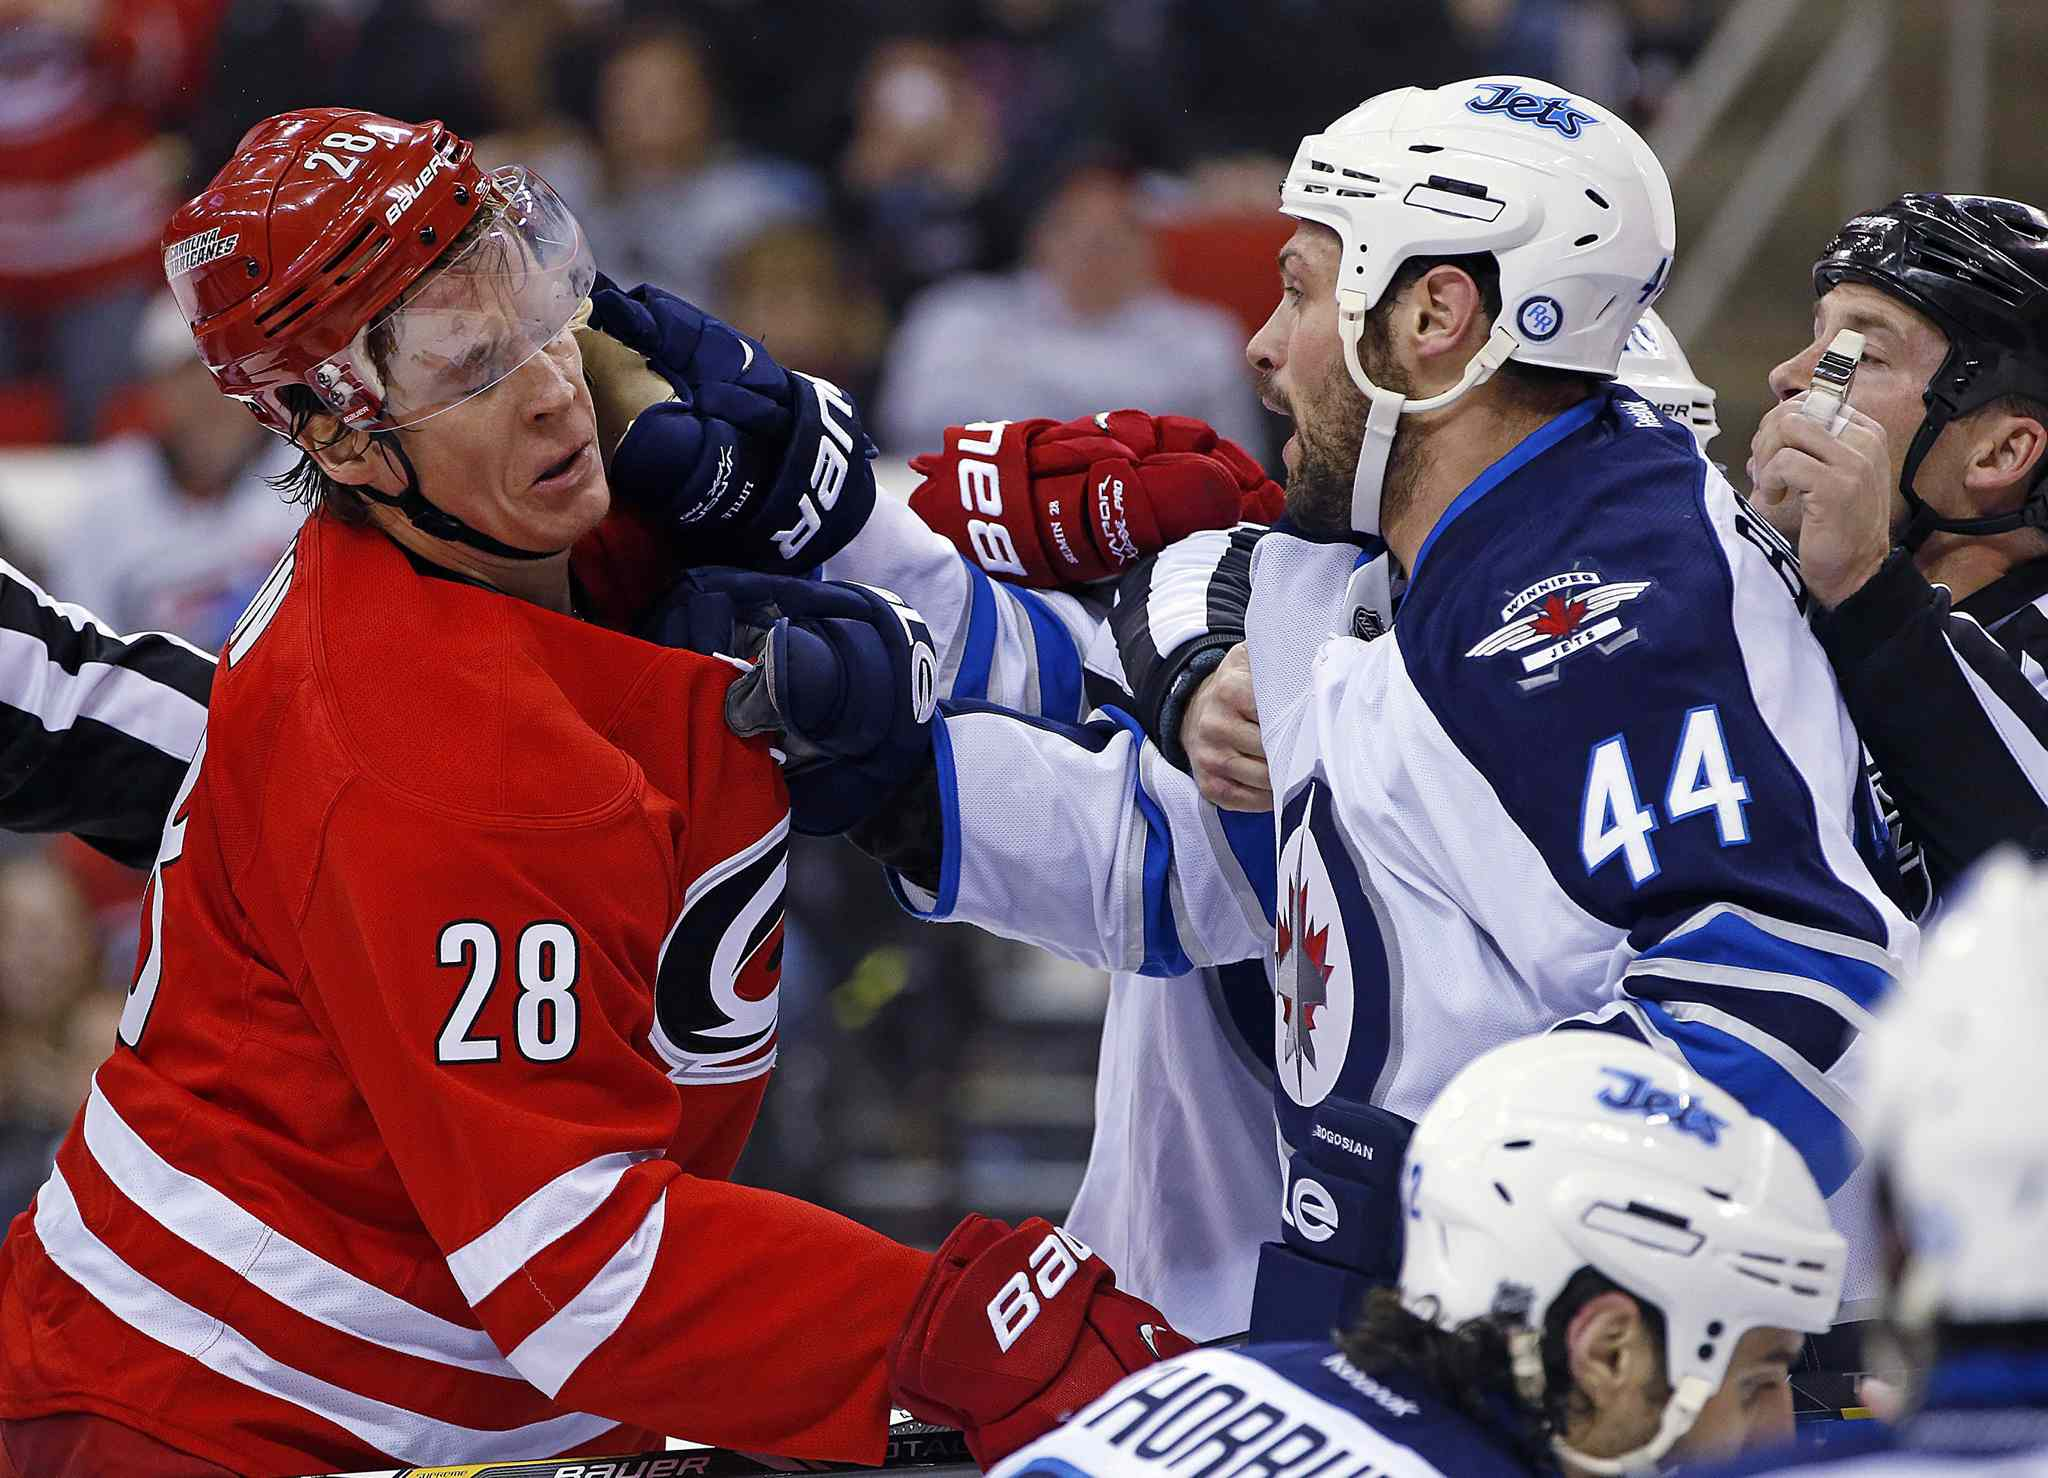 Carolina Hurricanes' Alexander Semin (28) and Winnipeg Jets' Zach Bogosian (44) have a second-period scuffle in front of the net during Tuesday's game.